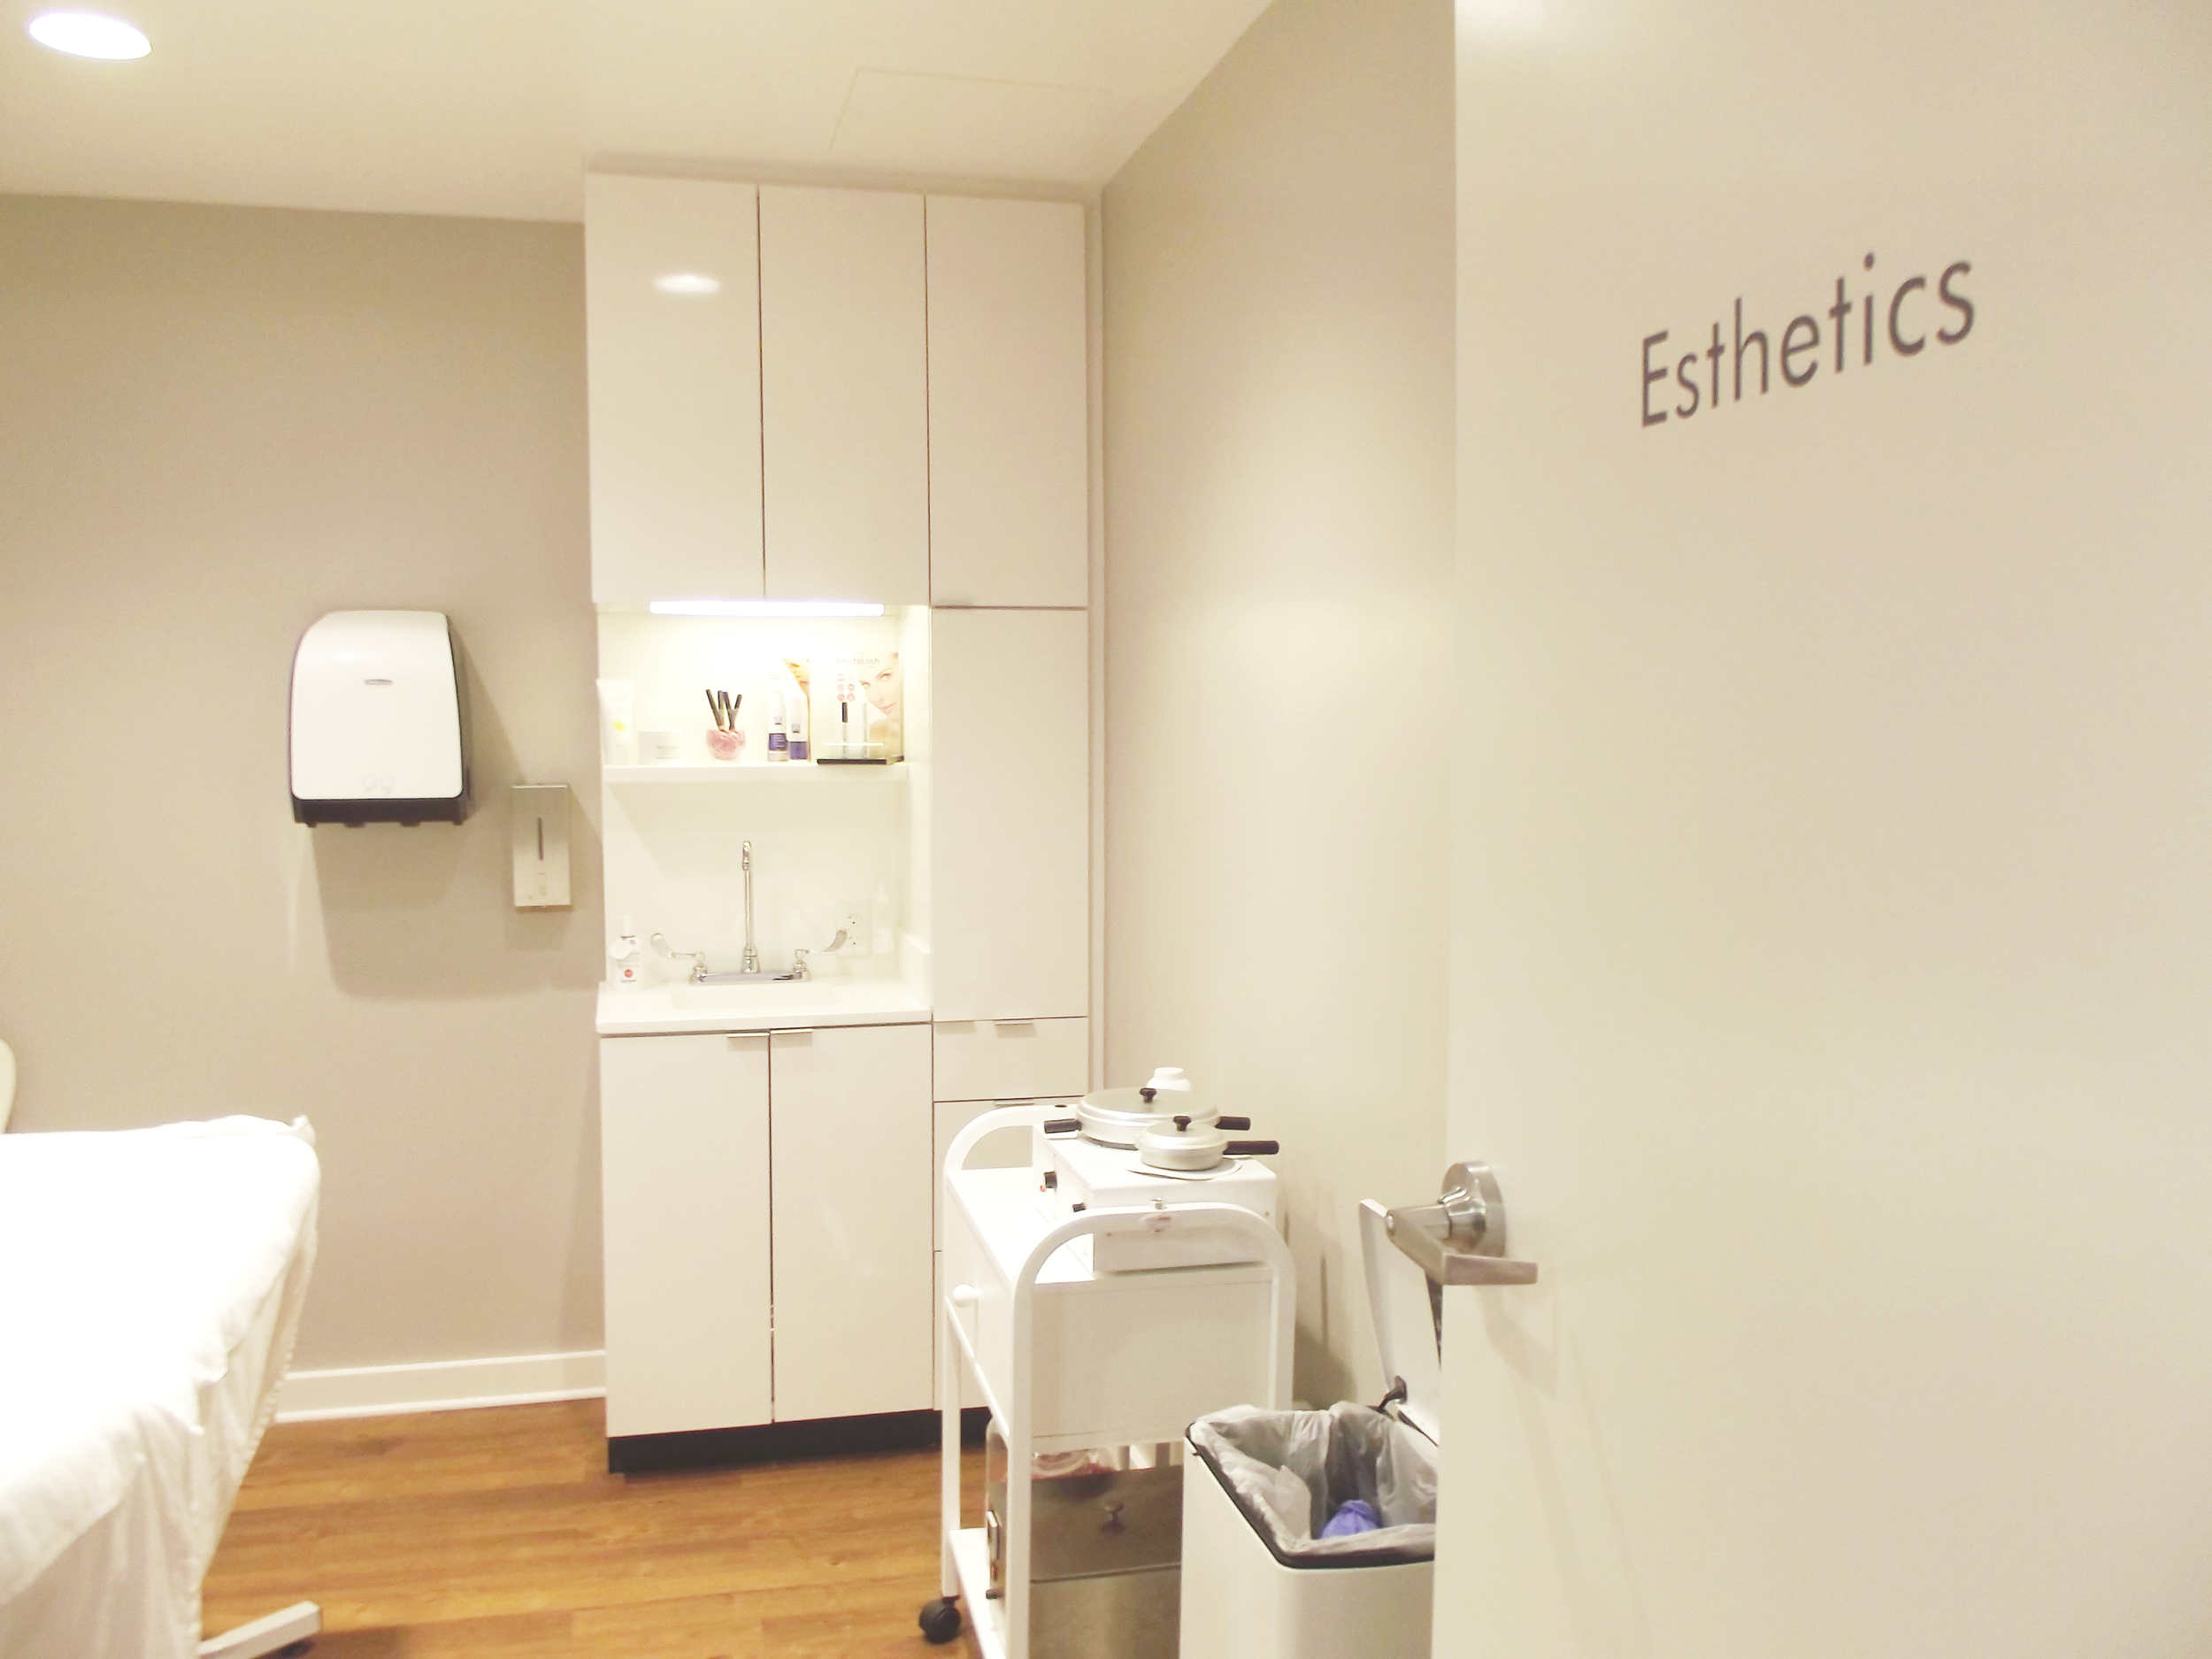 The esthetics room -- basically where you go to get waxed. Eek!